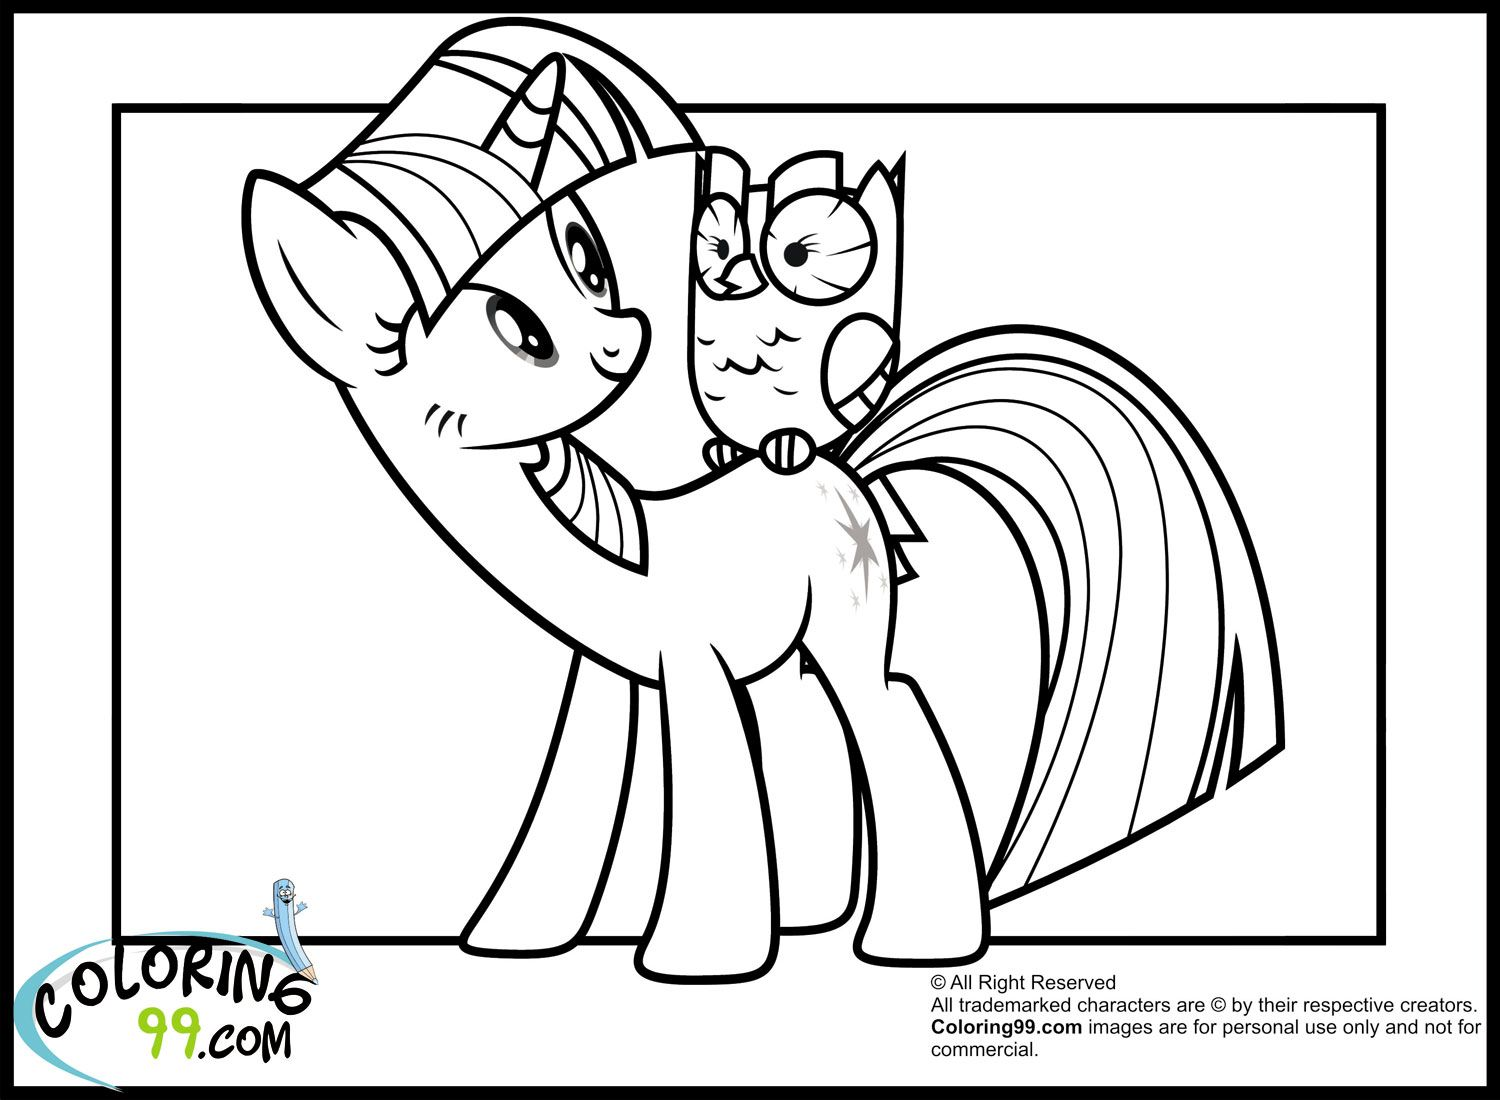 Young my little pony coloring pages - My Little Pony Coloring Pages Young Rarity Http East Color